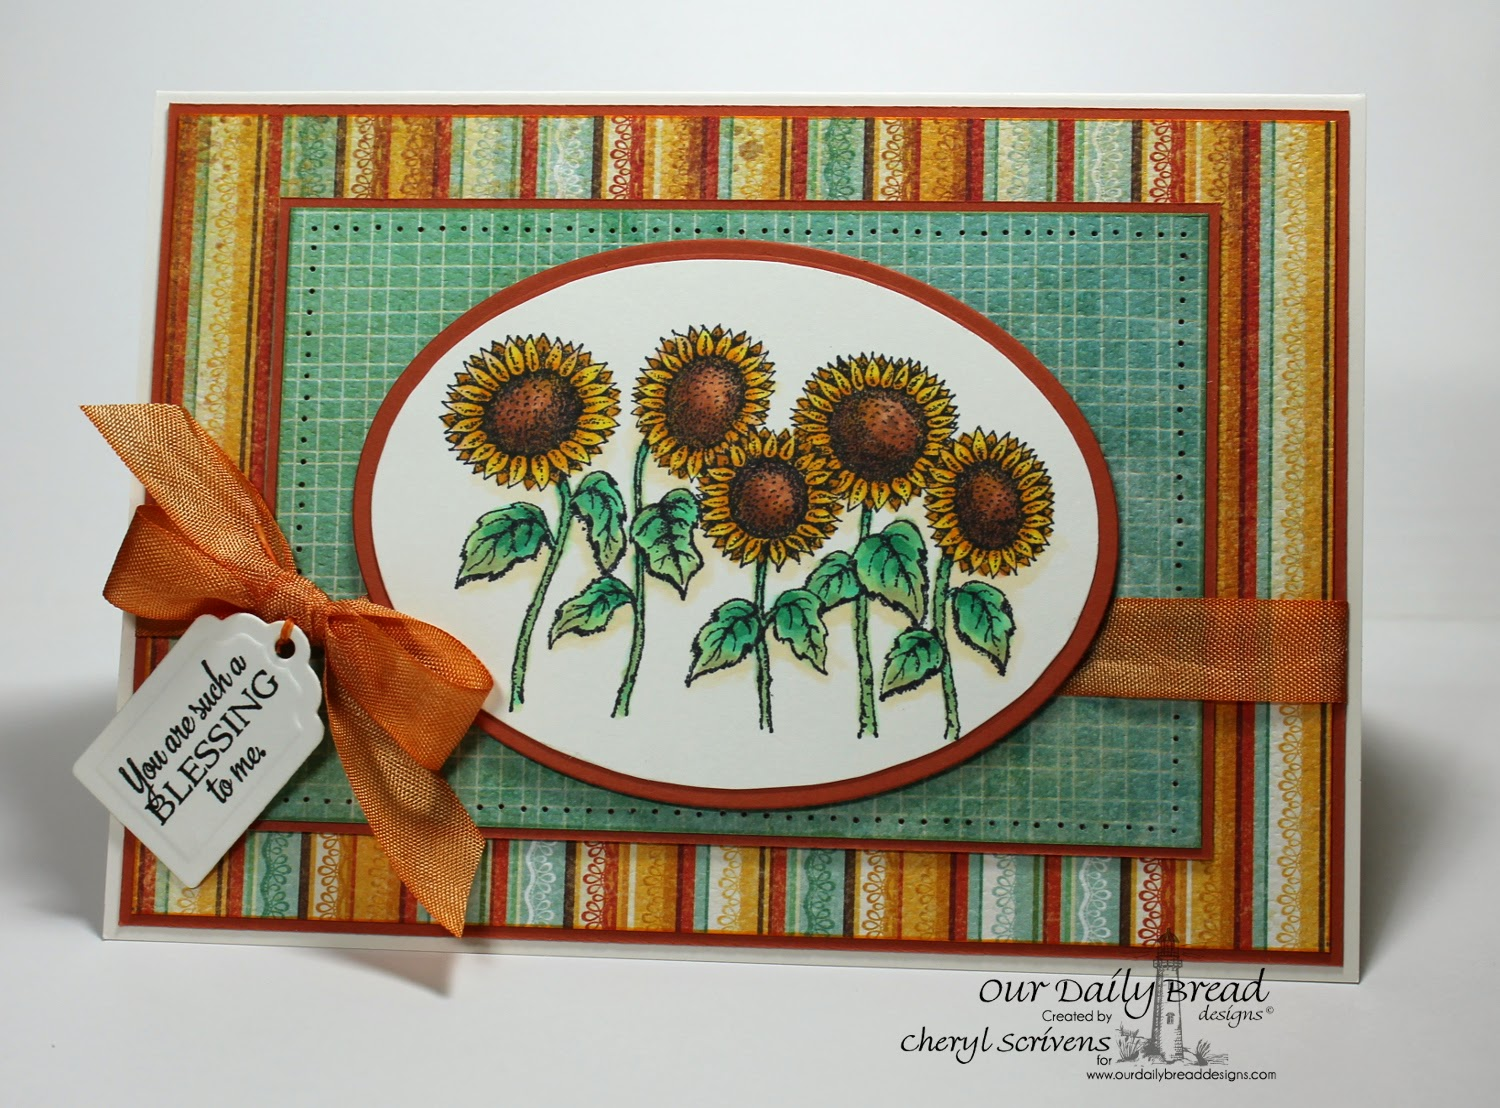 Our Daily Bread Designs, ODBDSLC214, Doily Blessings, Sunflowers, Recipe & Tags Dies, CherylQuilts, Designed by Cheryl Scrivens